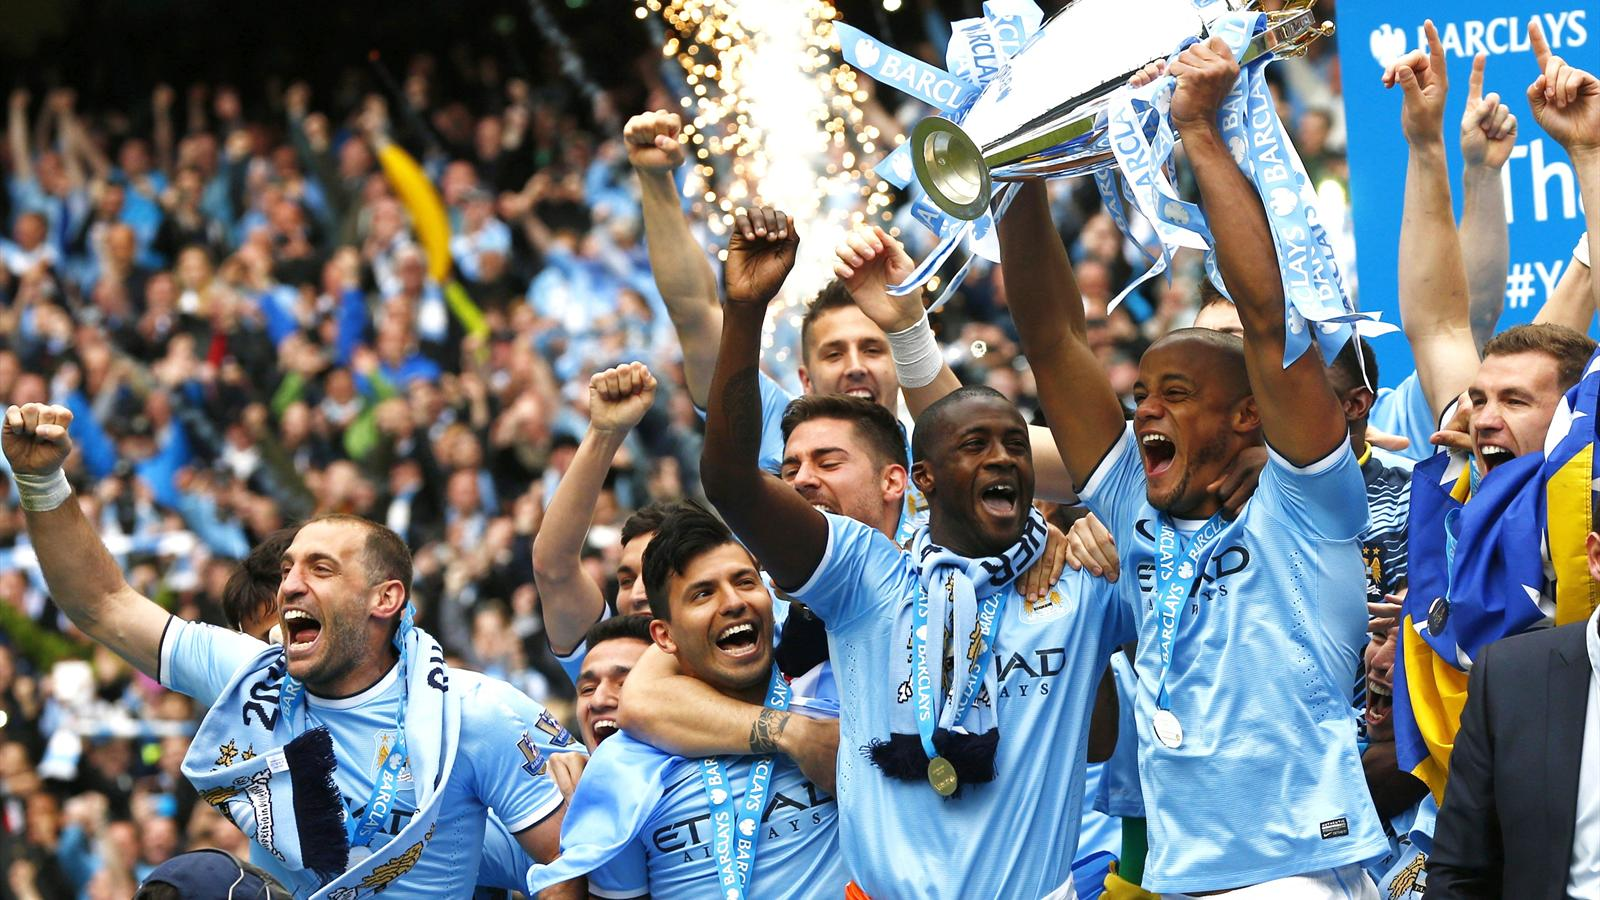 Great timing - City clinched the title on the last day of the season.